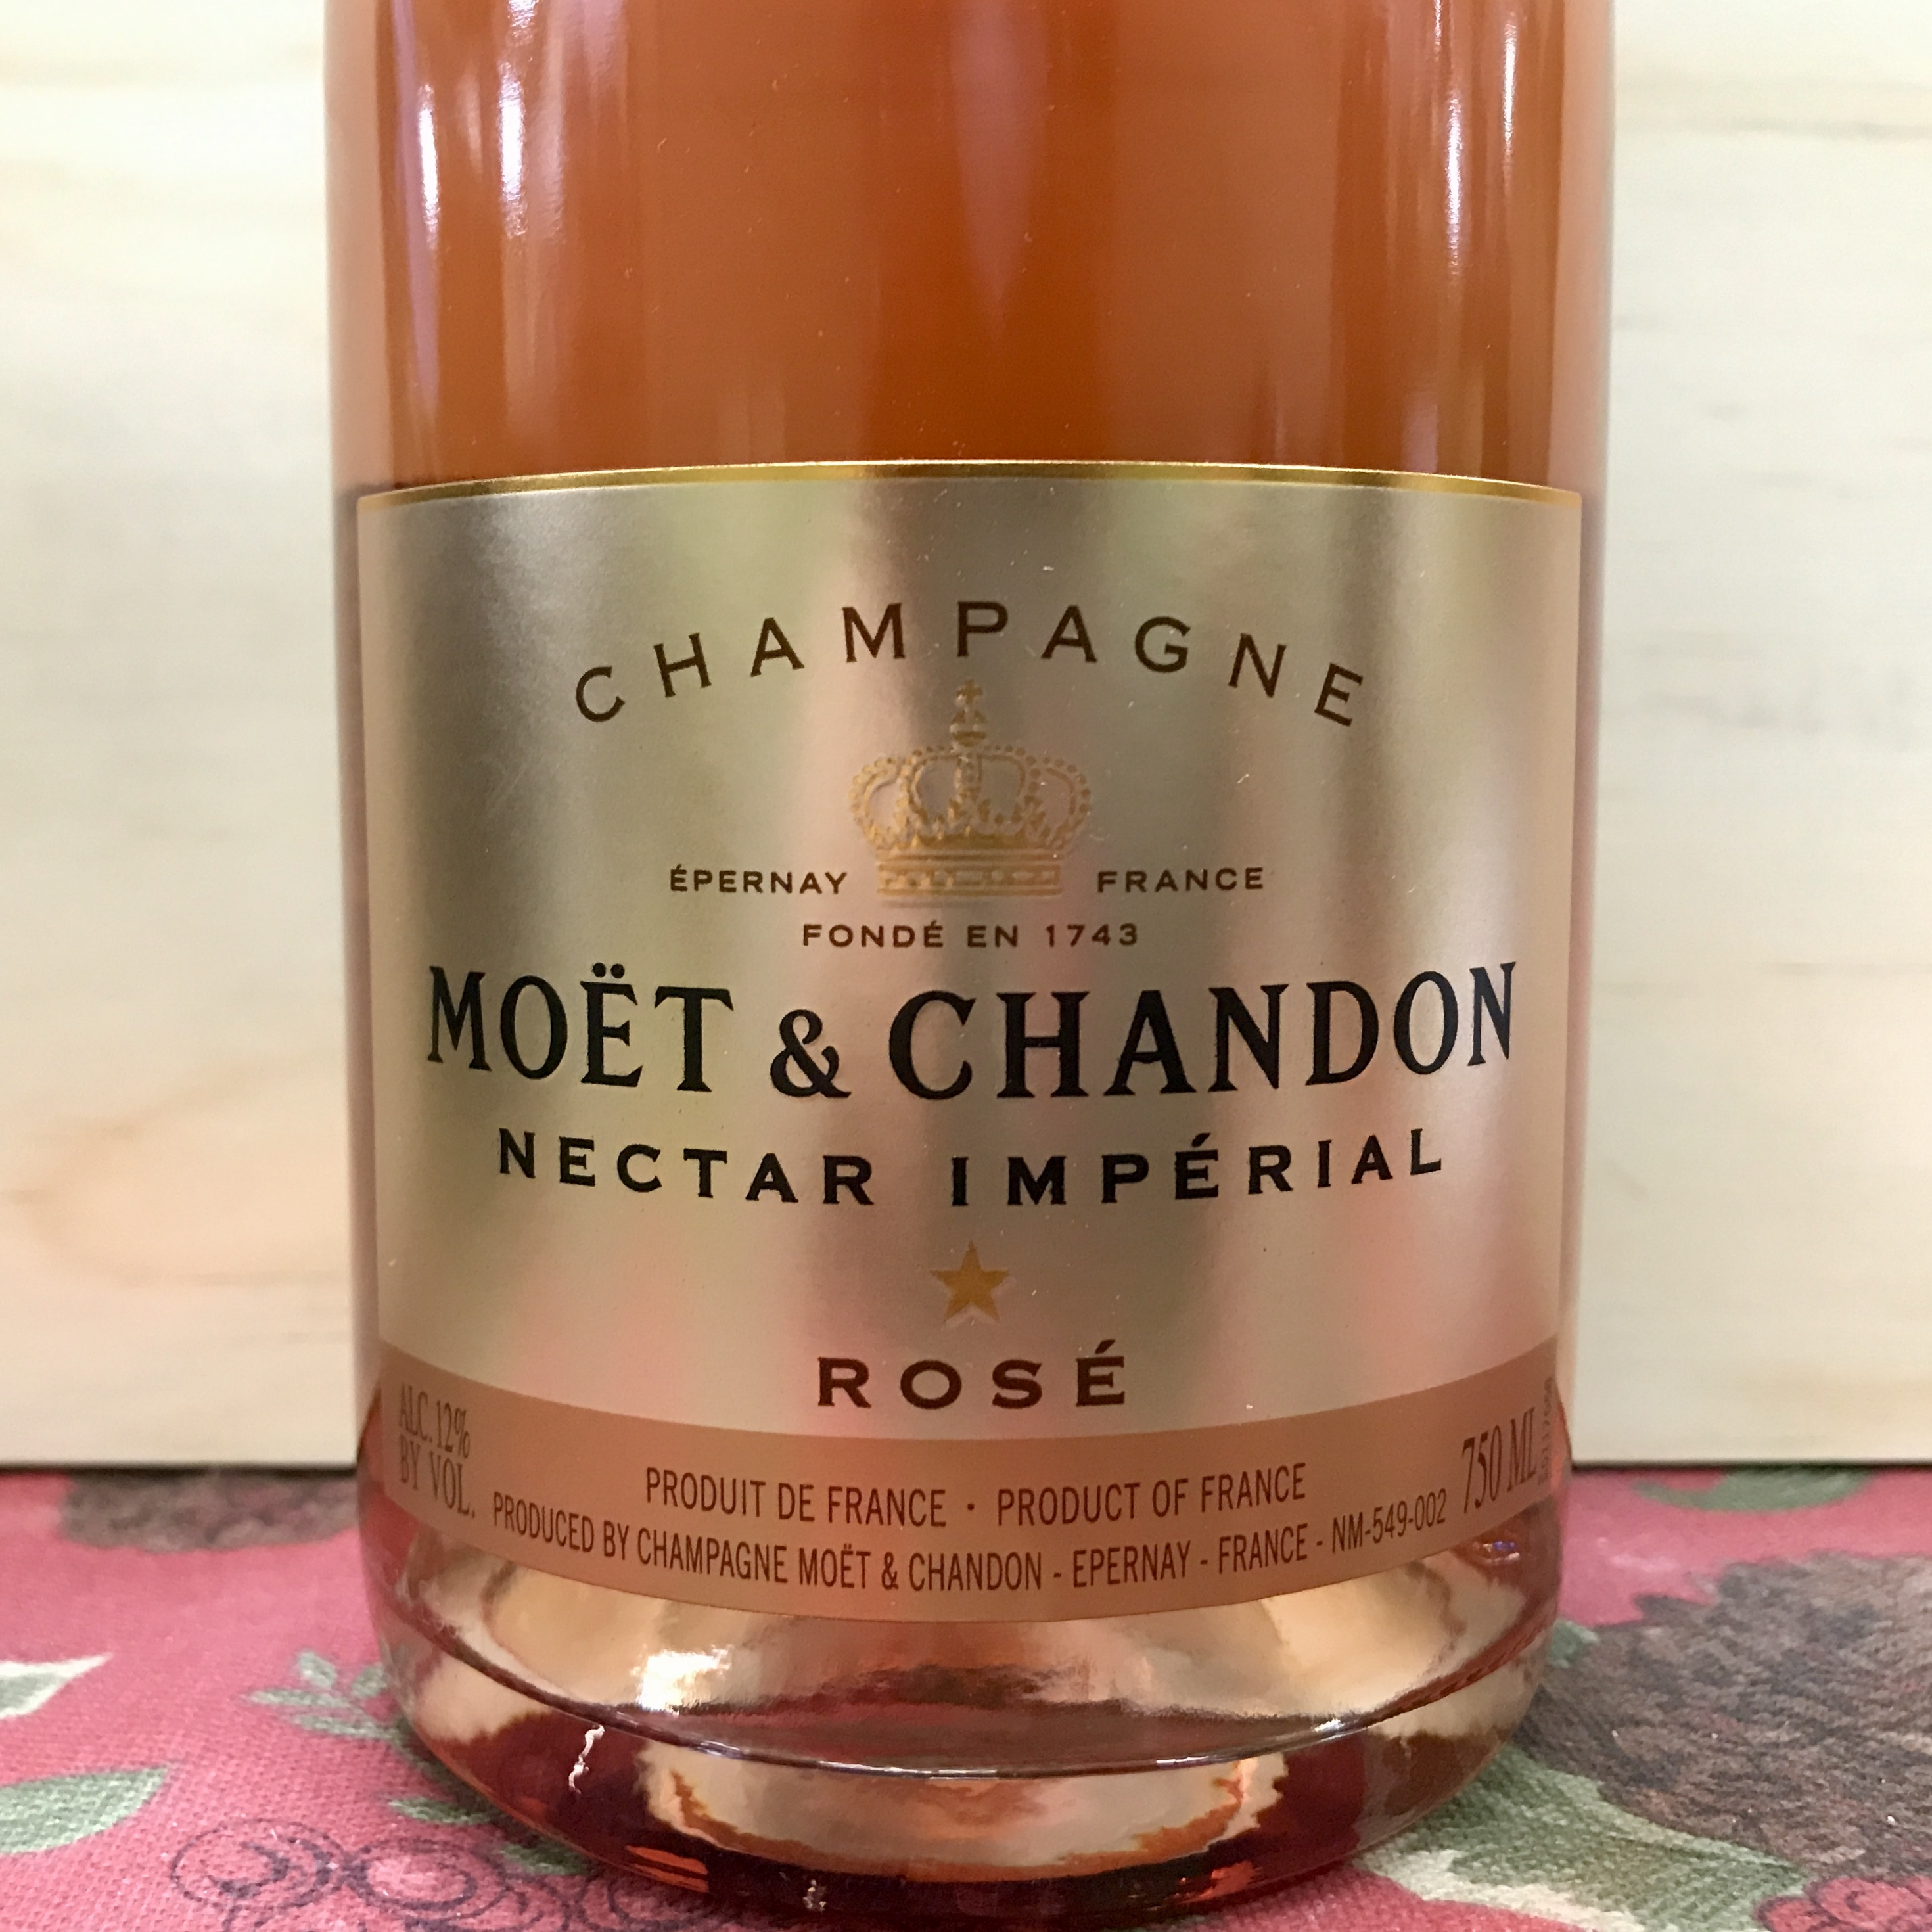 Moet & Chandon Nectar Imperial Rose Champagne NV